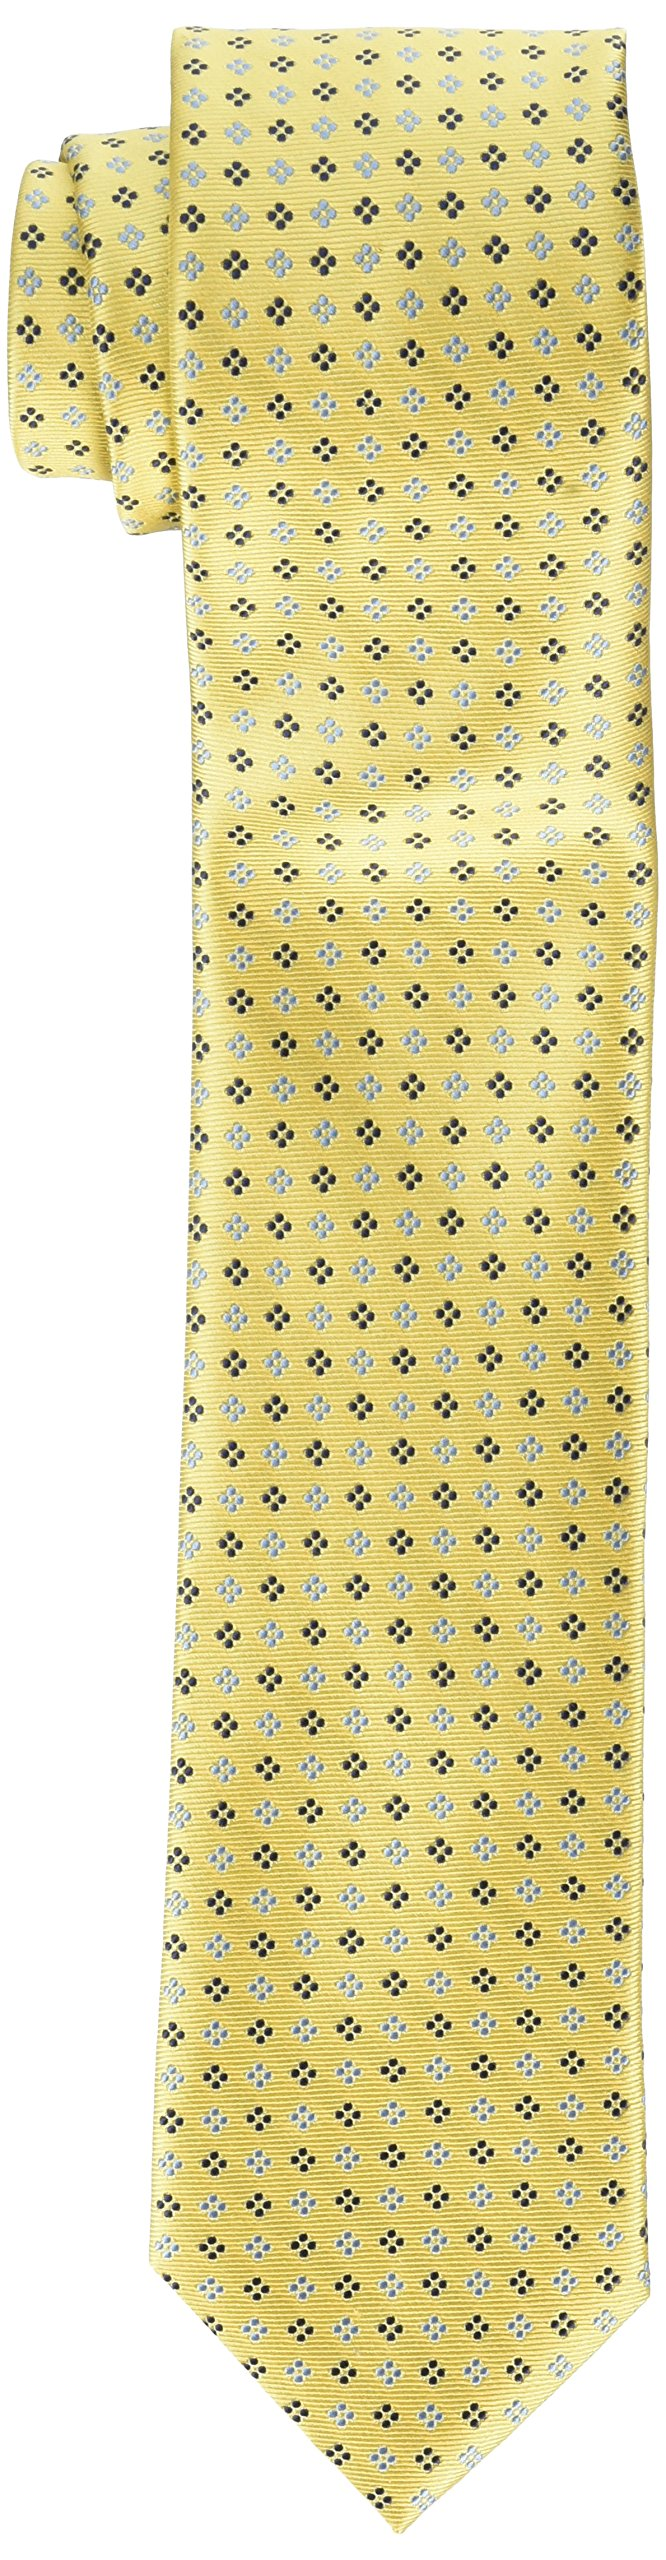 Tommy Hilfiger Men's Core Neat II Tie, Yellow, One Size